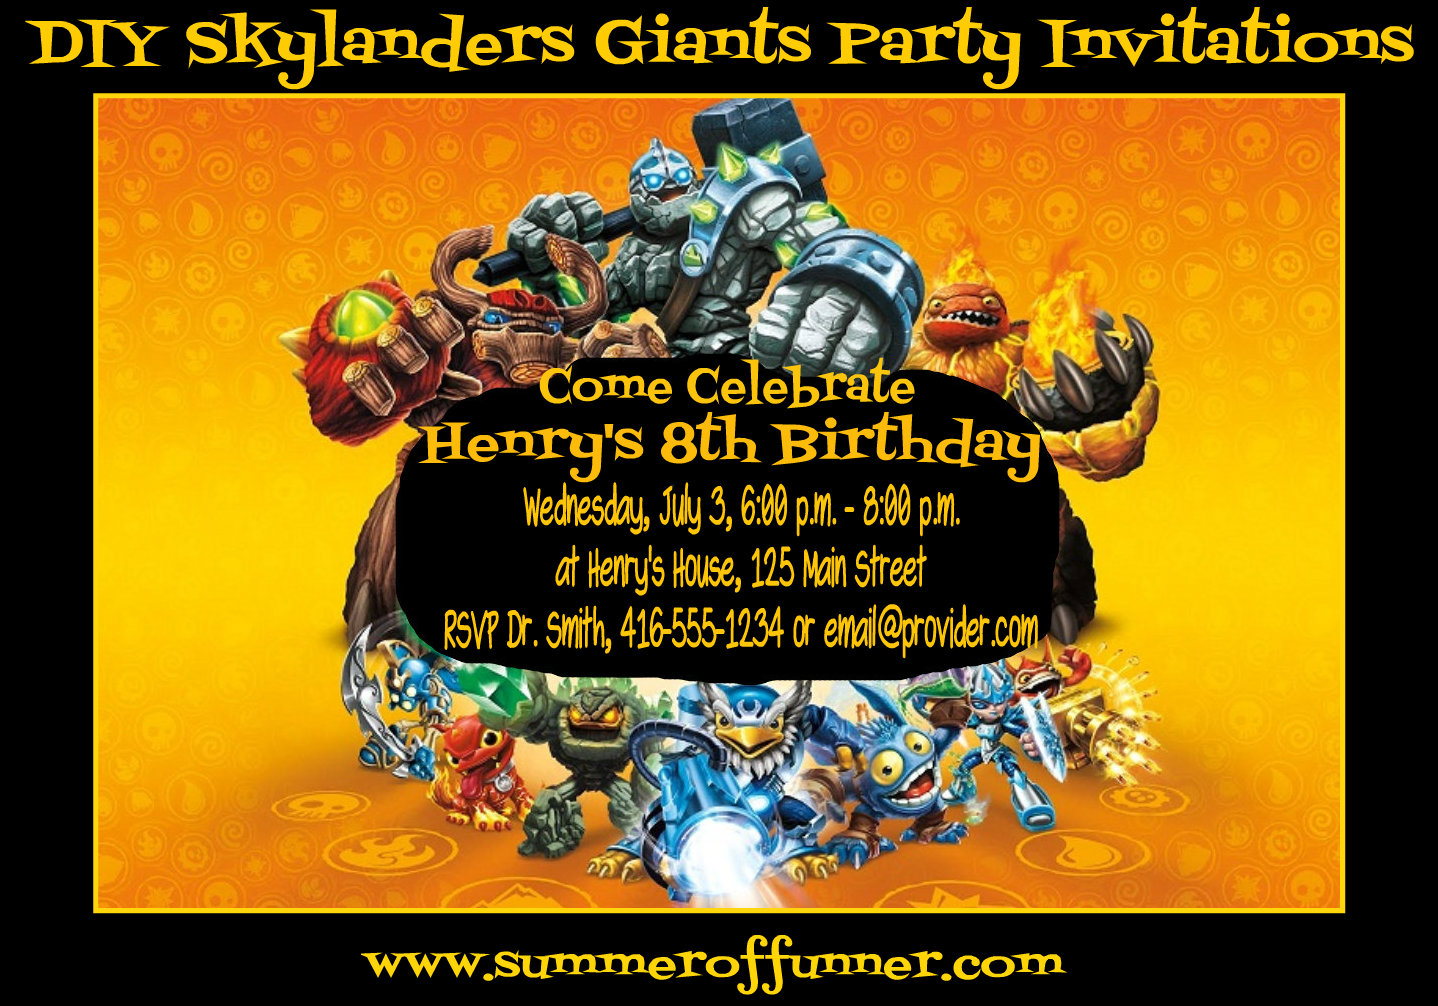 DIY Skylanders Giants Birthday Party Invitations